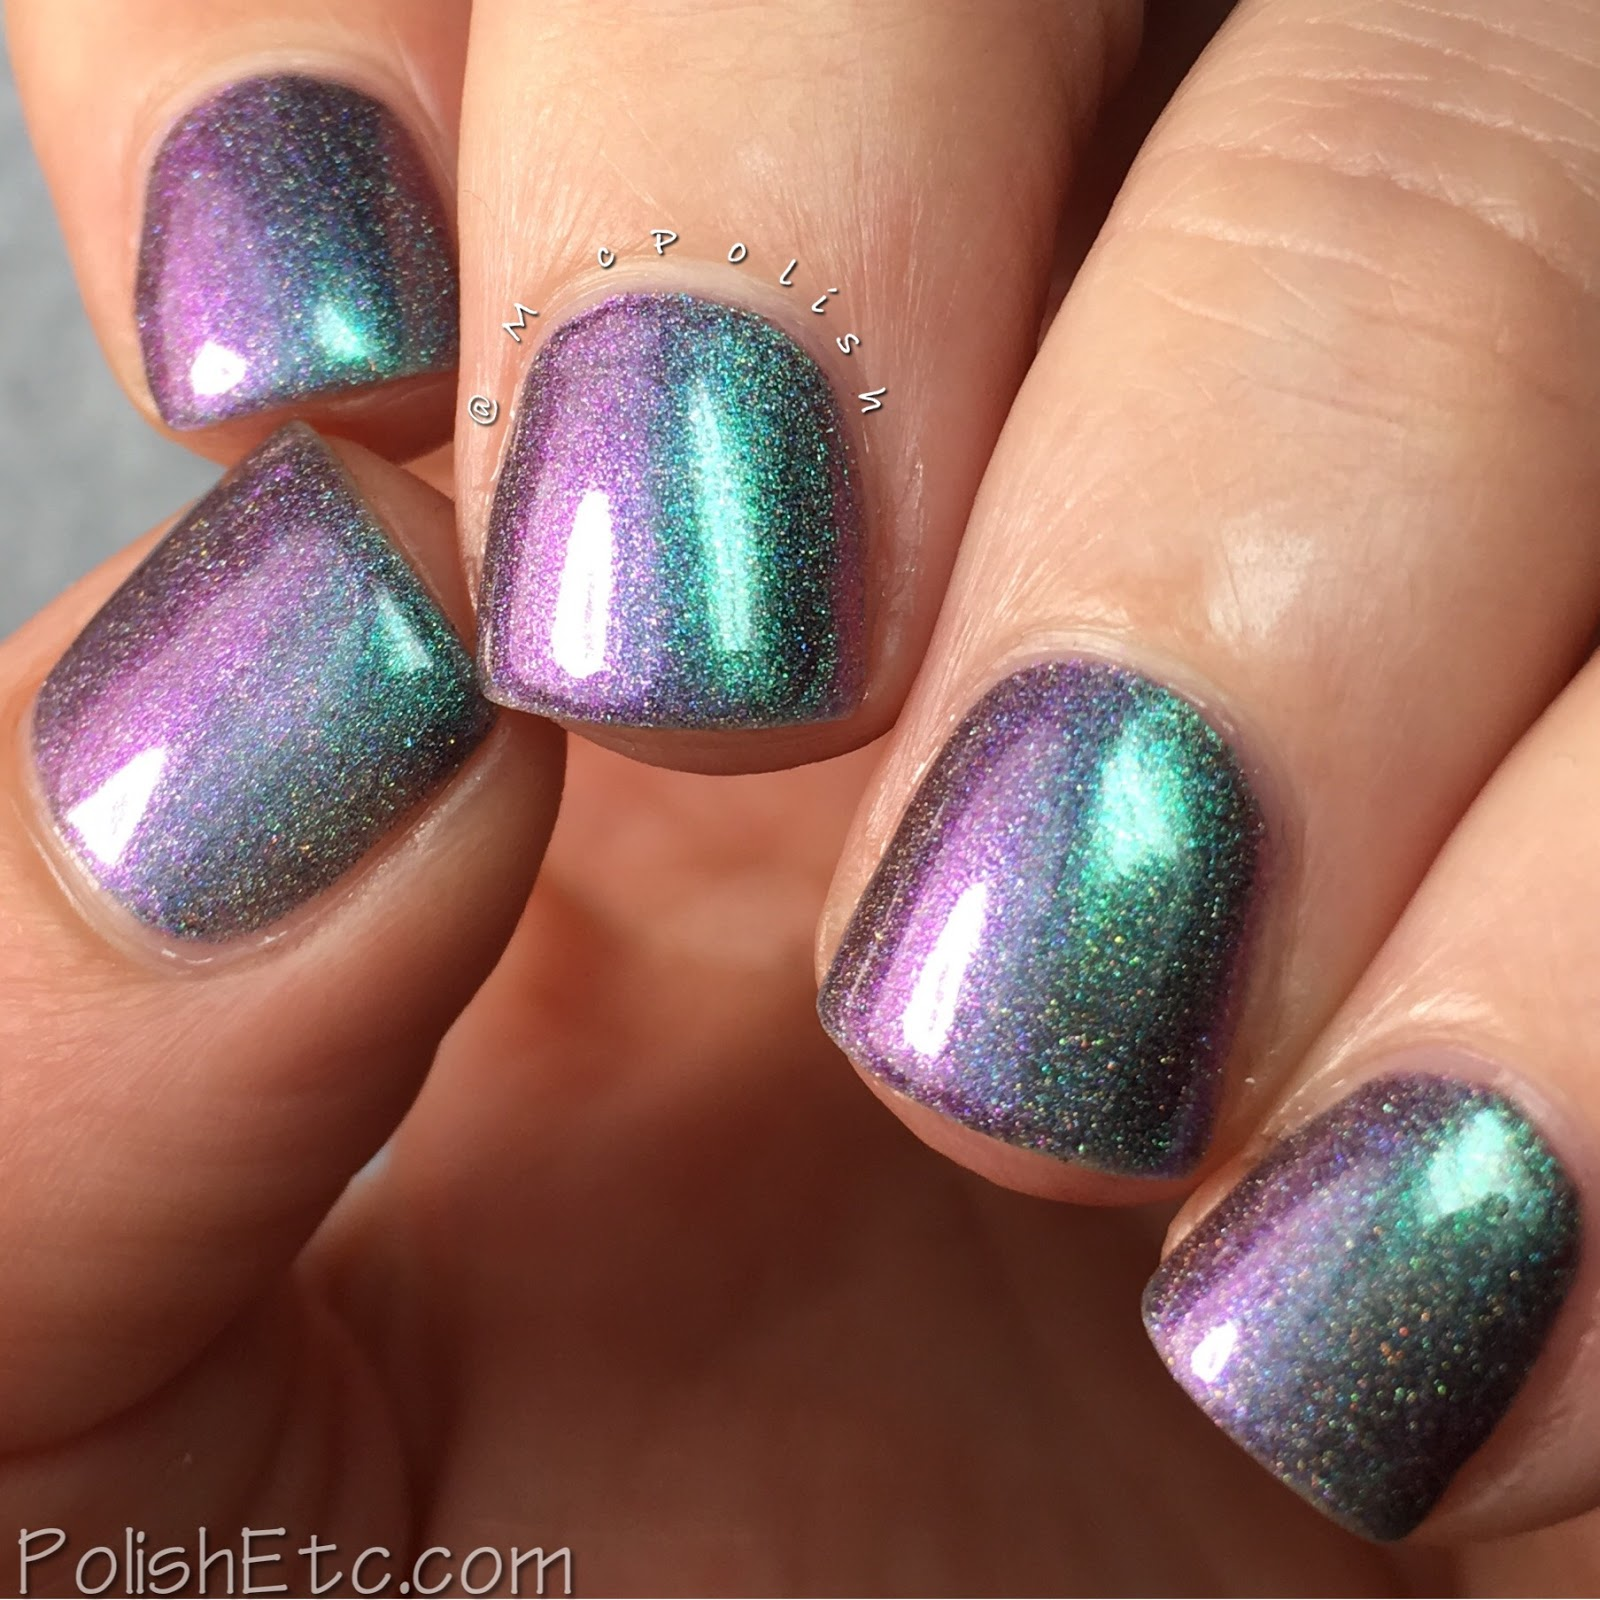 Candy Lacquer - The Twilight Zone Collection - McPolish - Twenty-Two